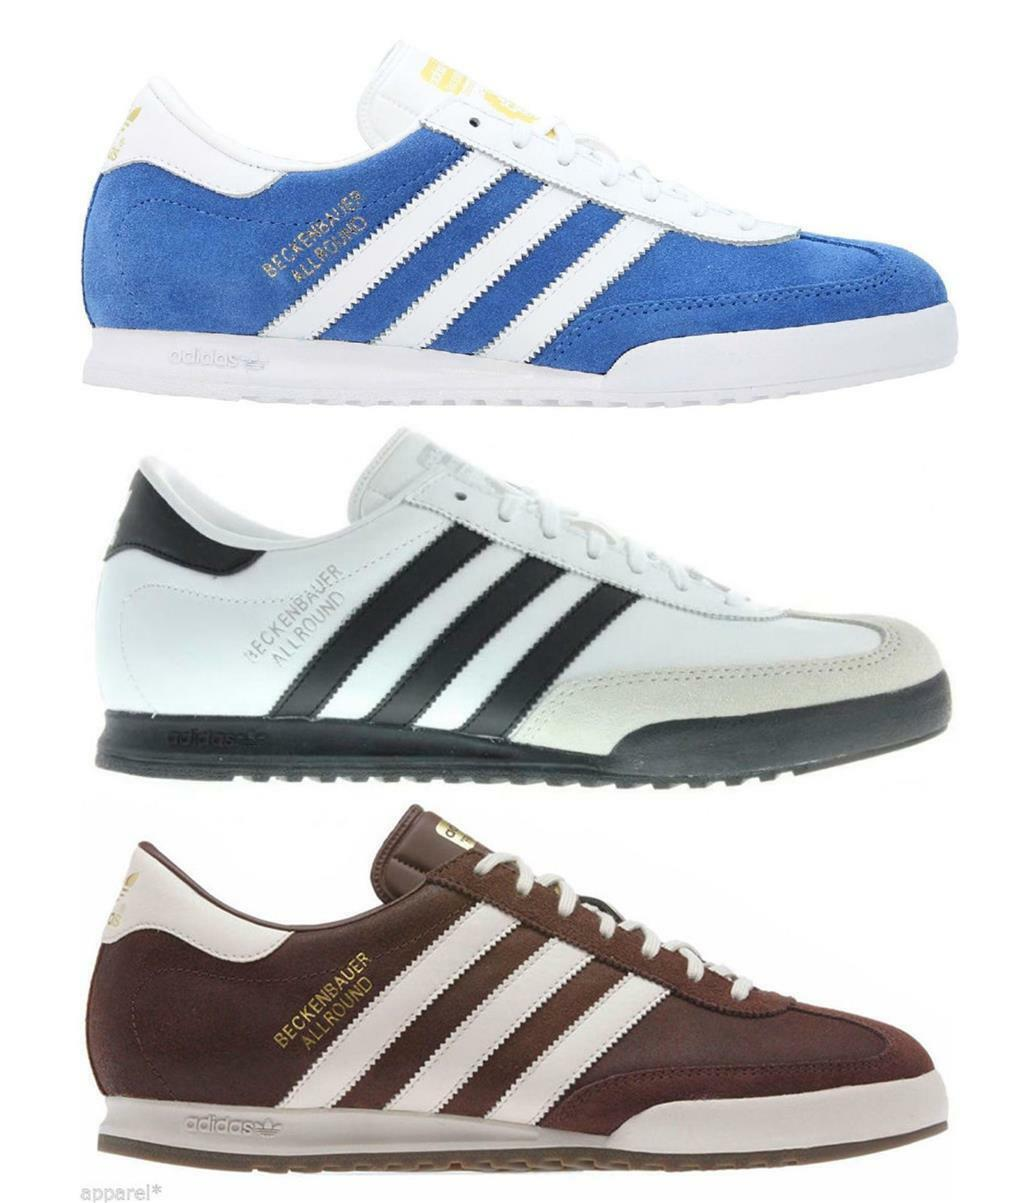 Adidas Beckenbauer Allround Shoes Mens Casual Retro Trainers Shoes Allround UK Size 7-12 rrp 893f03